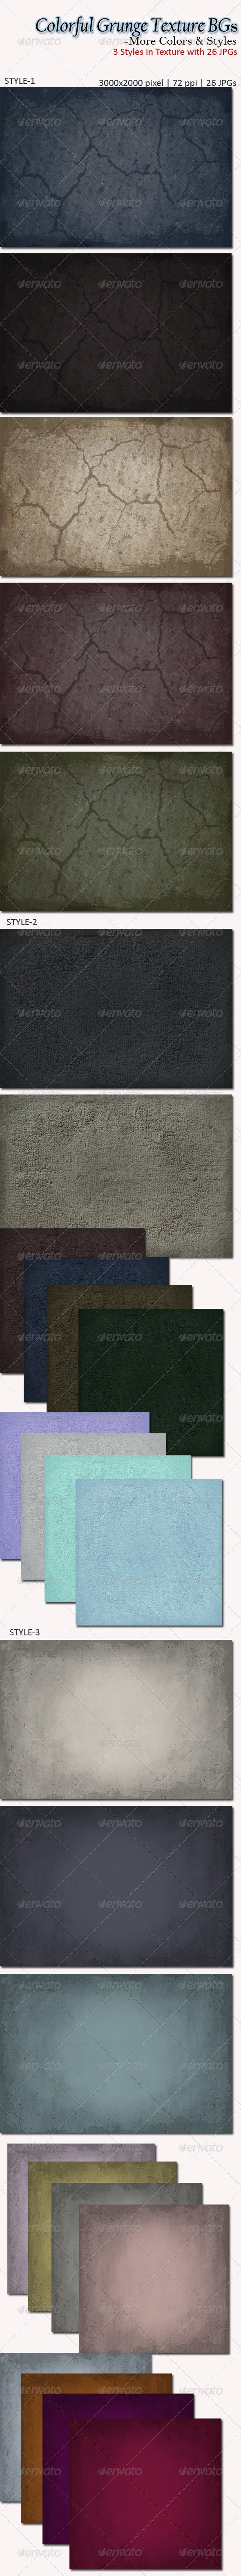 Colorful Grunge Texture BGs- More Colors and Style - Patterns Backgrounds